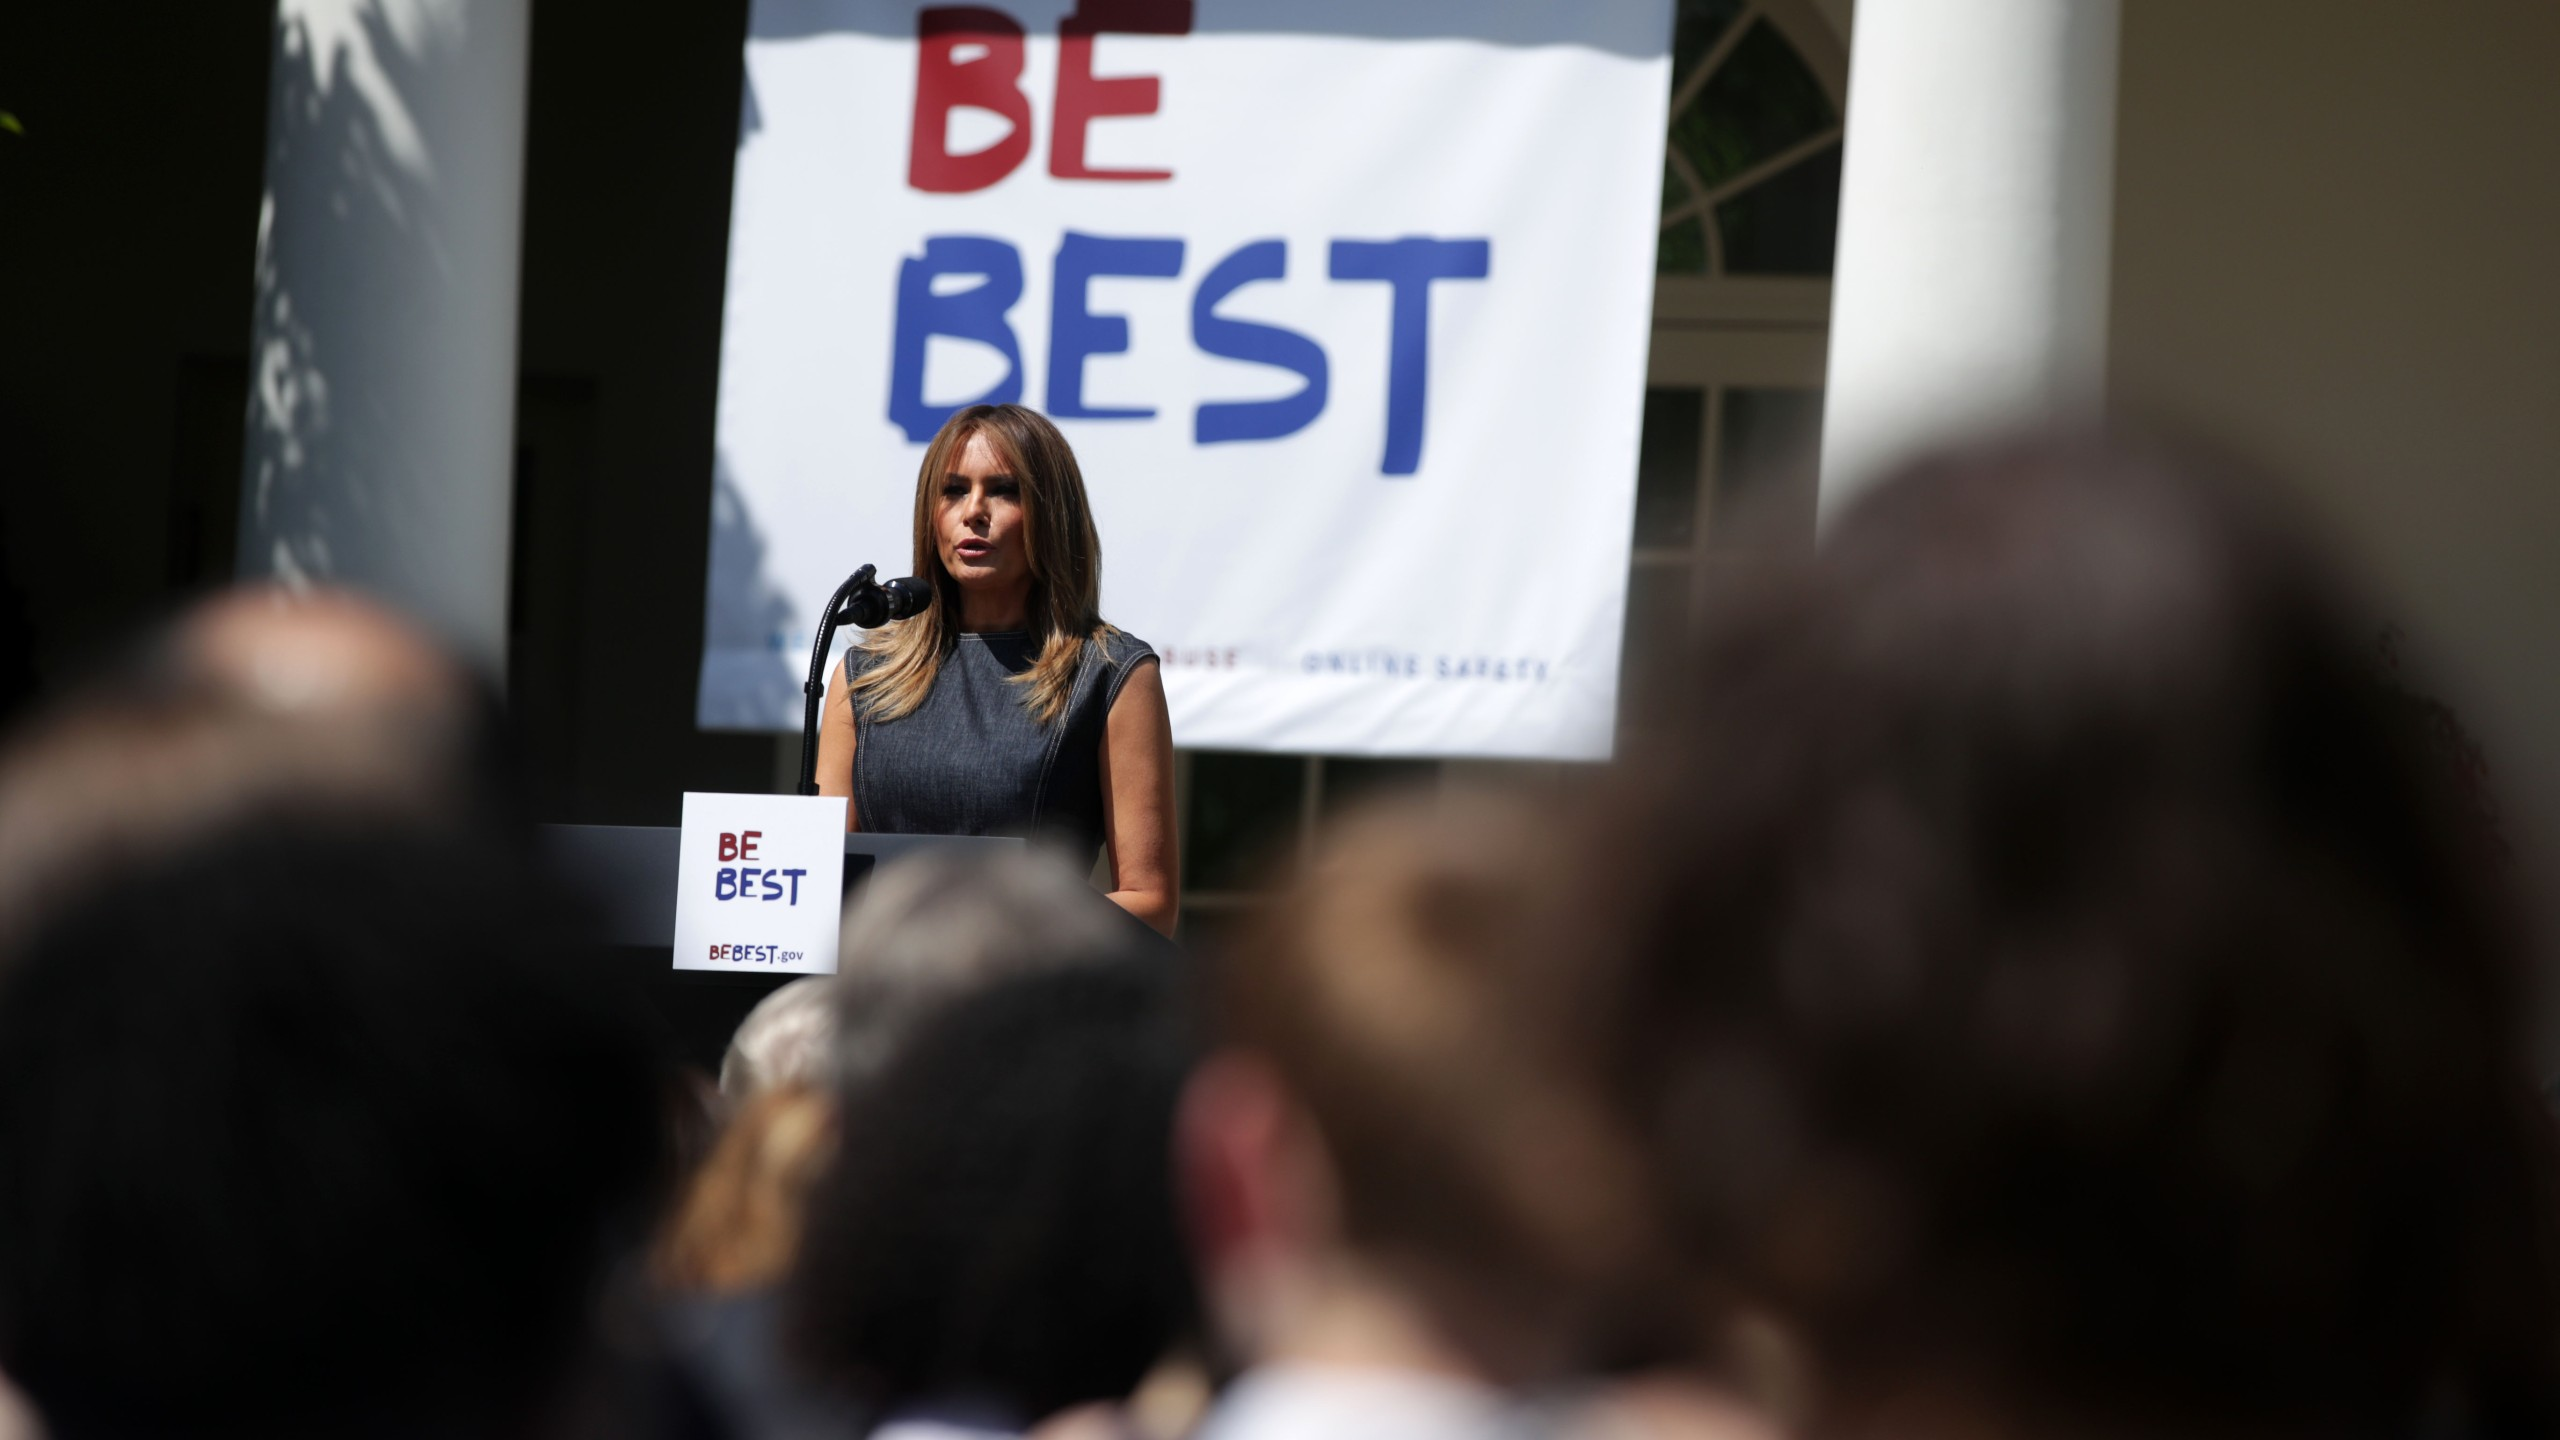 First lady Melania Trump speaks during a Rose Garden event at the White House on May 7, 2019. (Credit: Alex Wong/Getty Images)